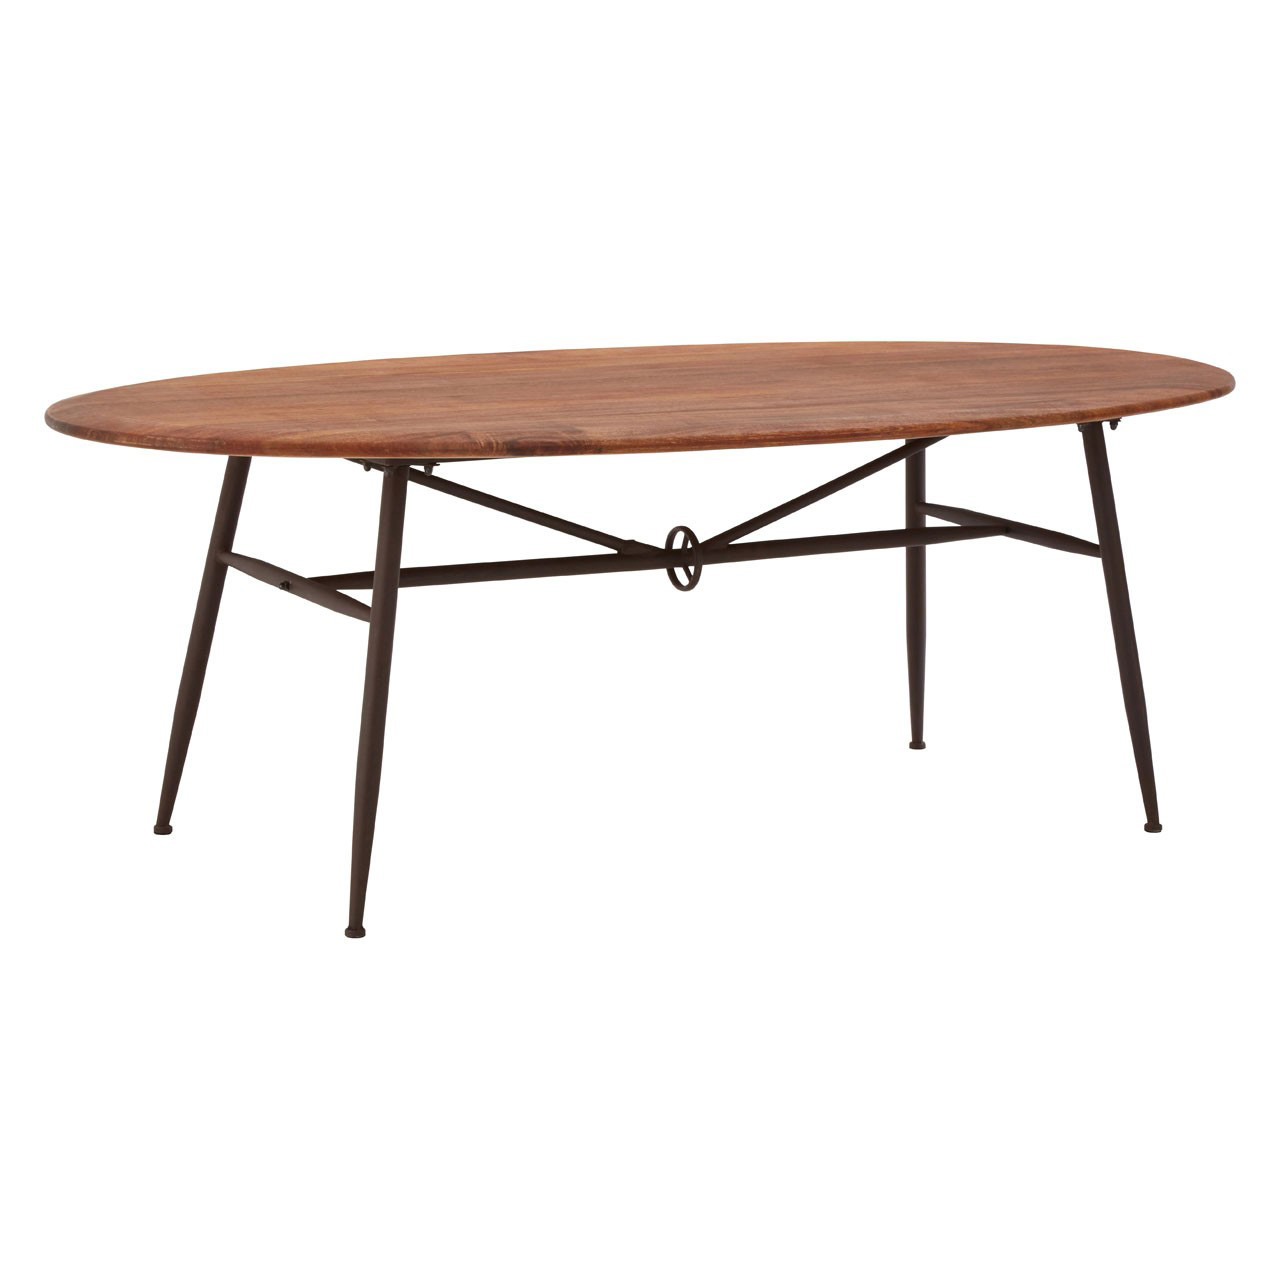 foundry oval walnut dining table industrial. Black Bedroom Furniture Sets. Home Design Ideas